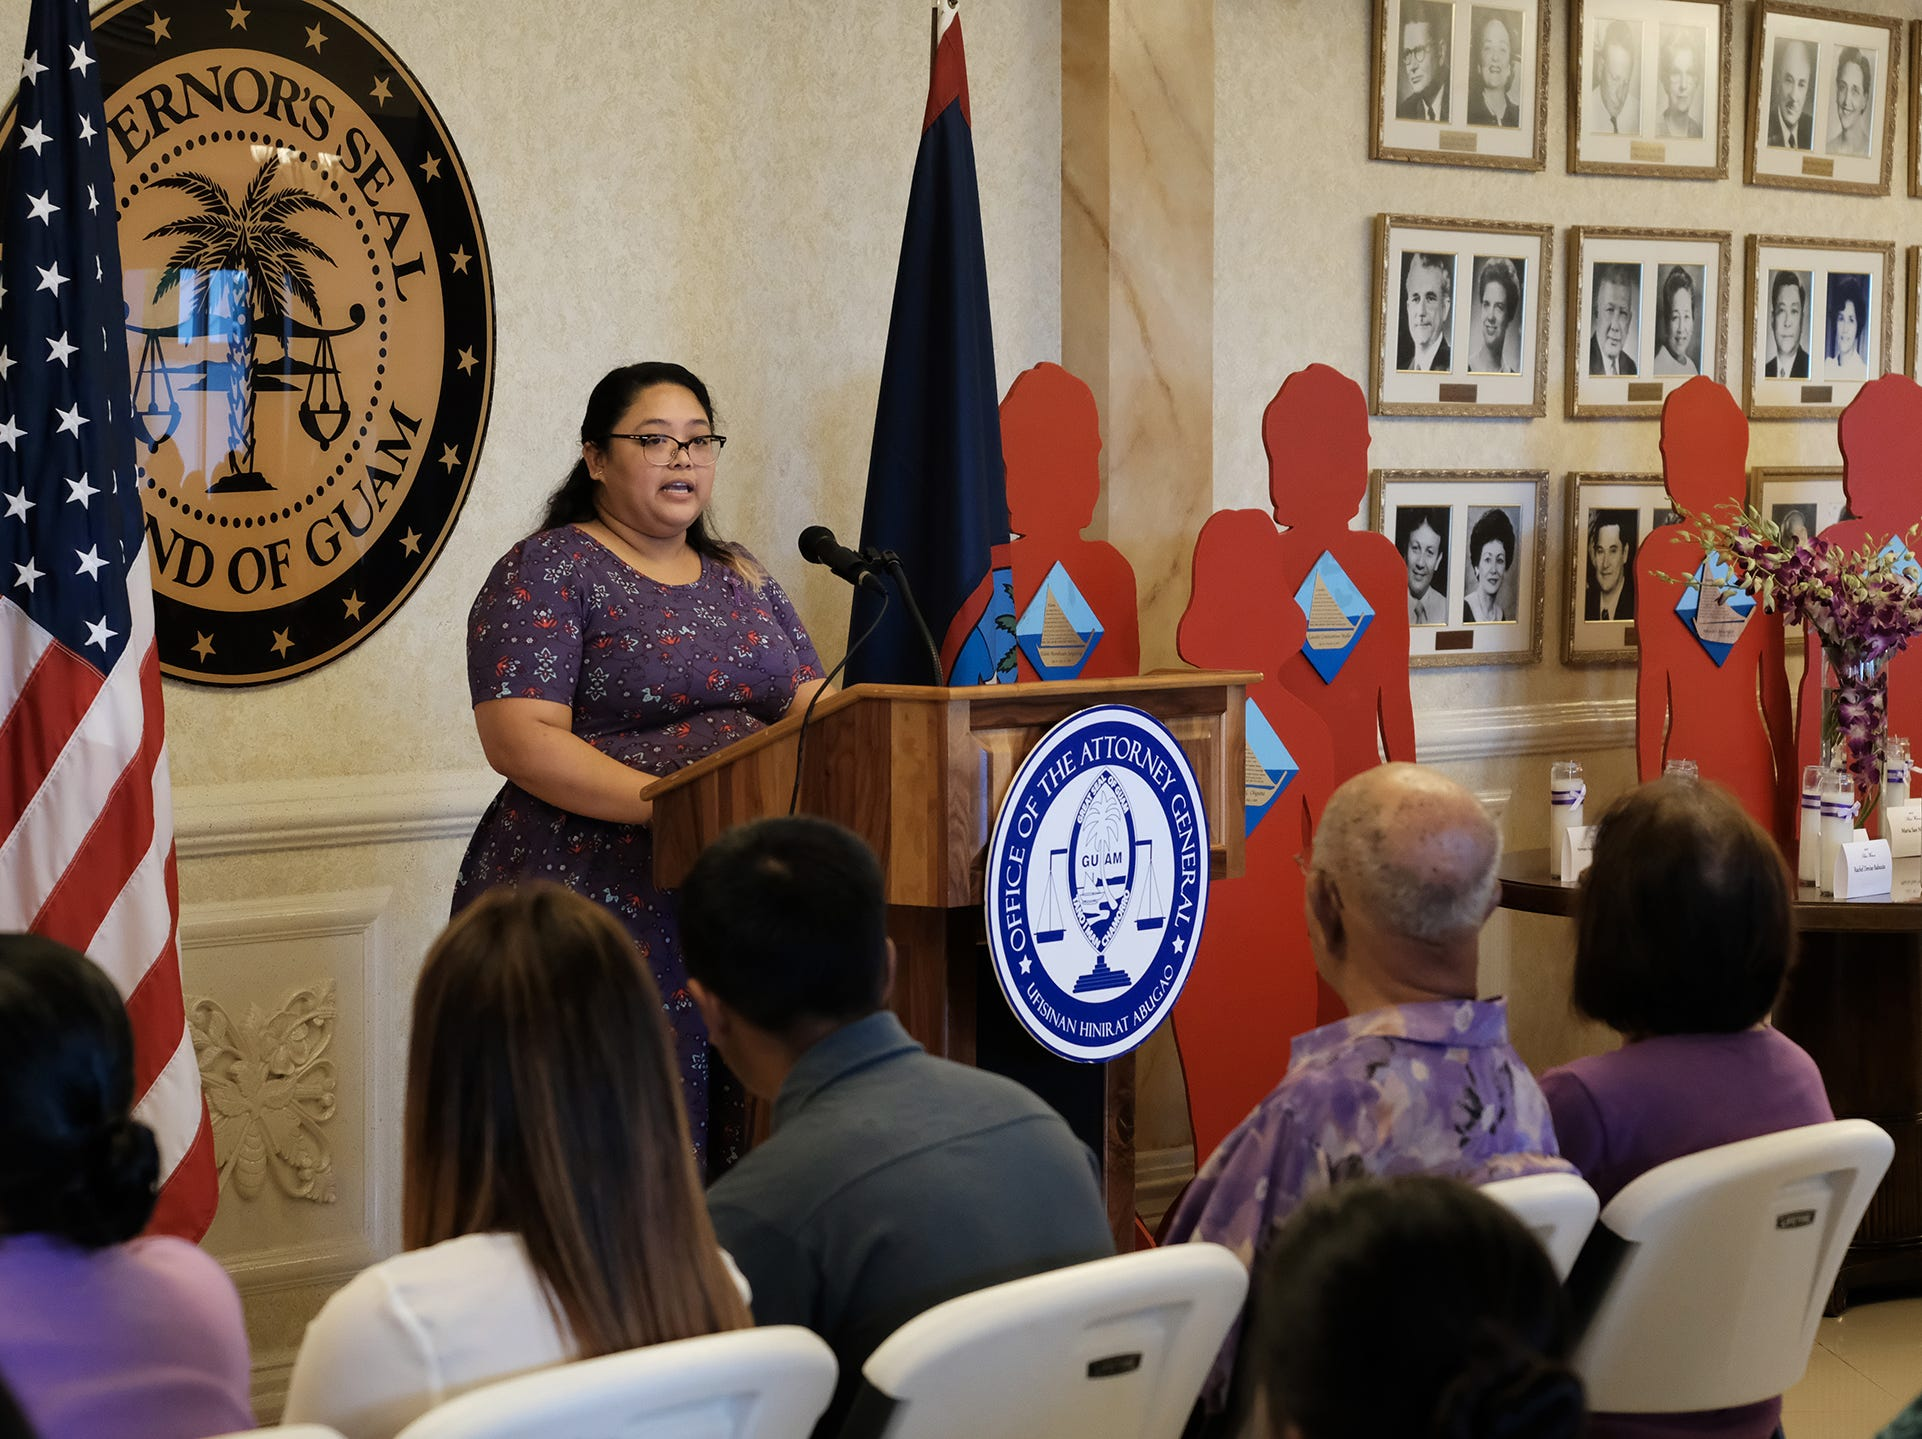 Melissa Ann Duenas Quinata, niece of silent witness Melissa Ann Quinata, gives the keynote speech about her family's experience with domestic violence at the 2018 Silent Witness Ceremony at Government House Oct. 19, 2018.